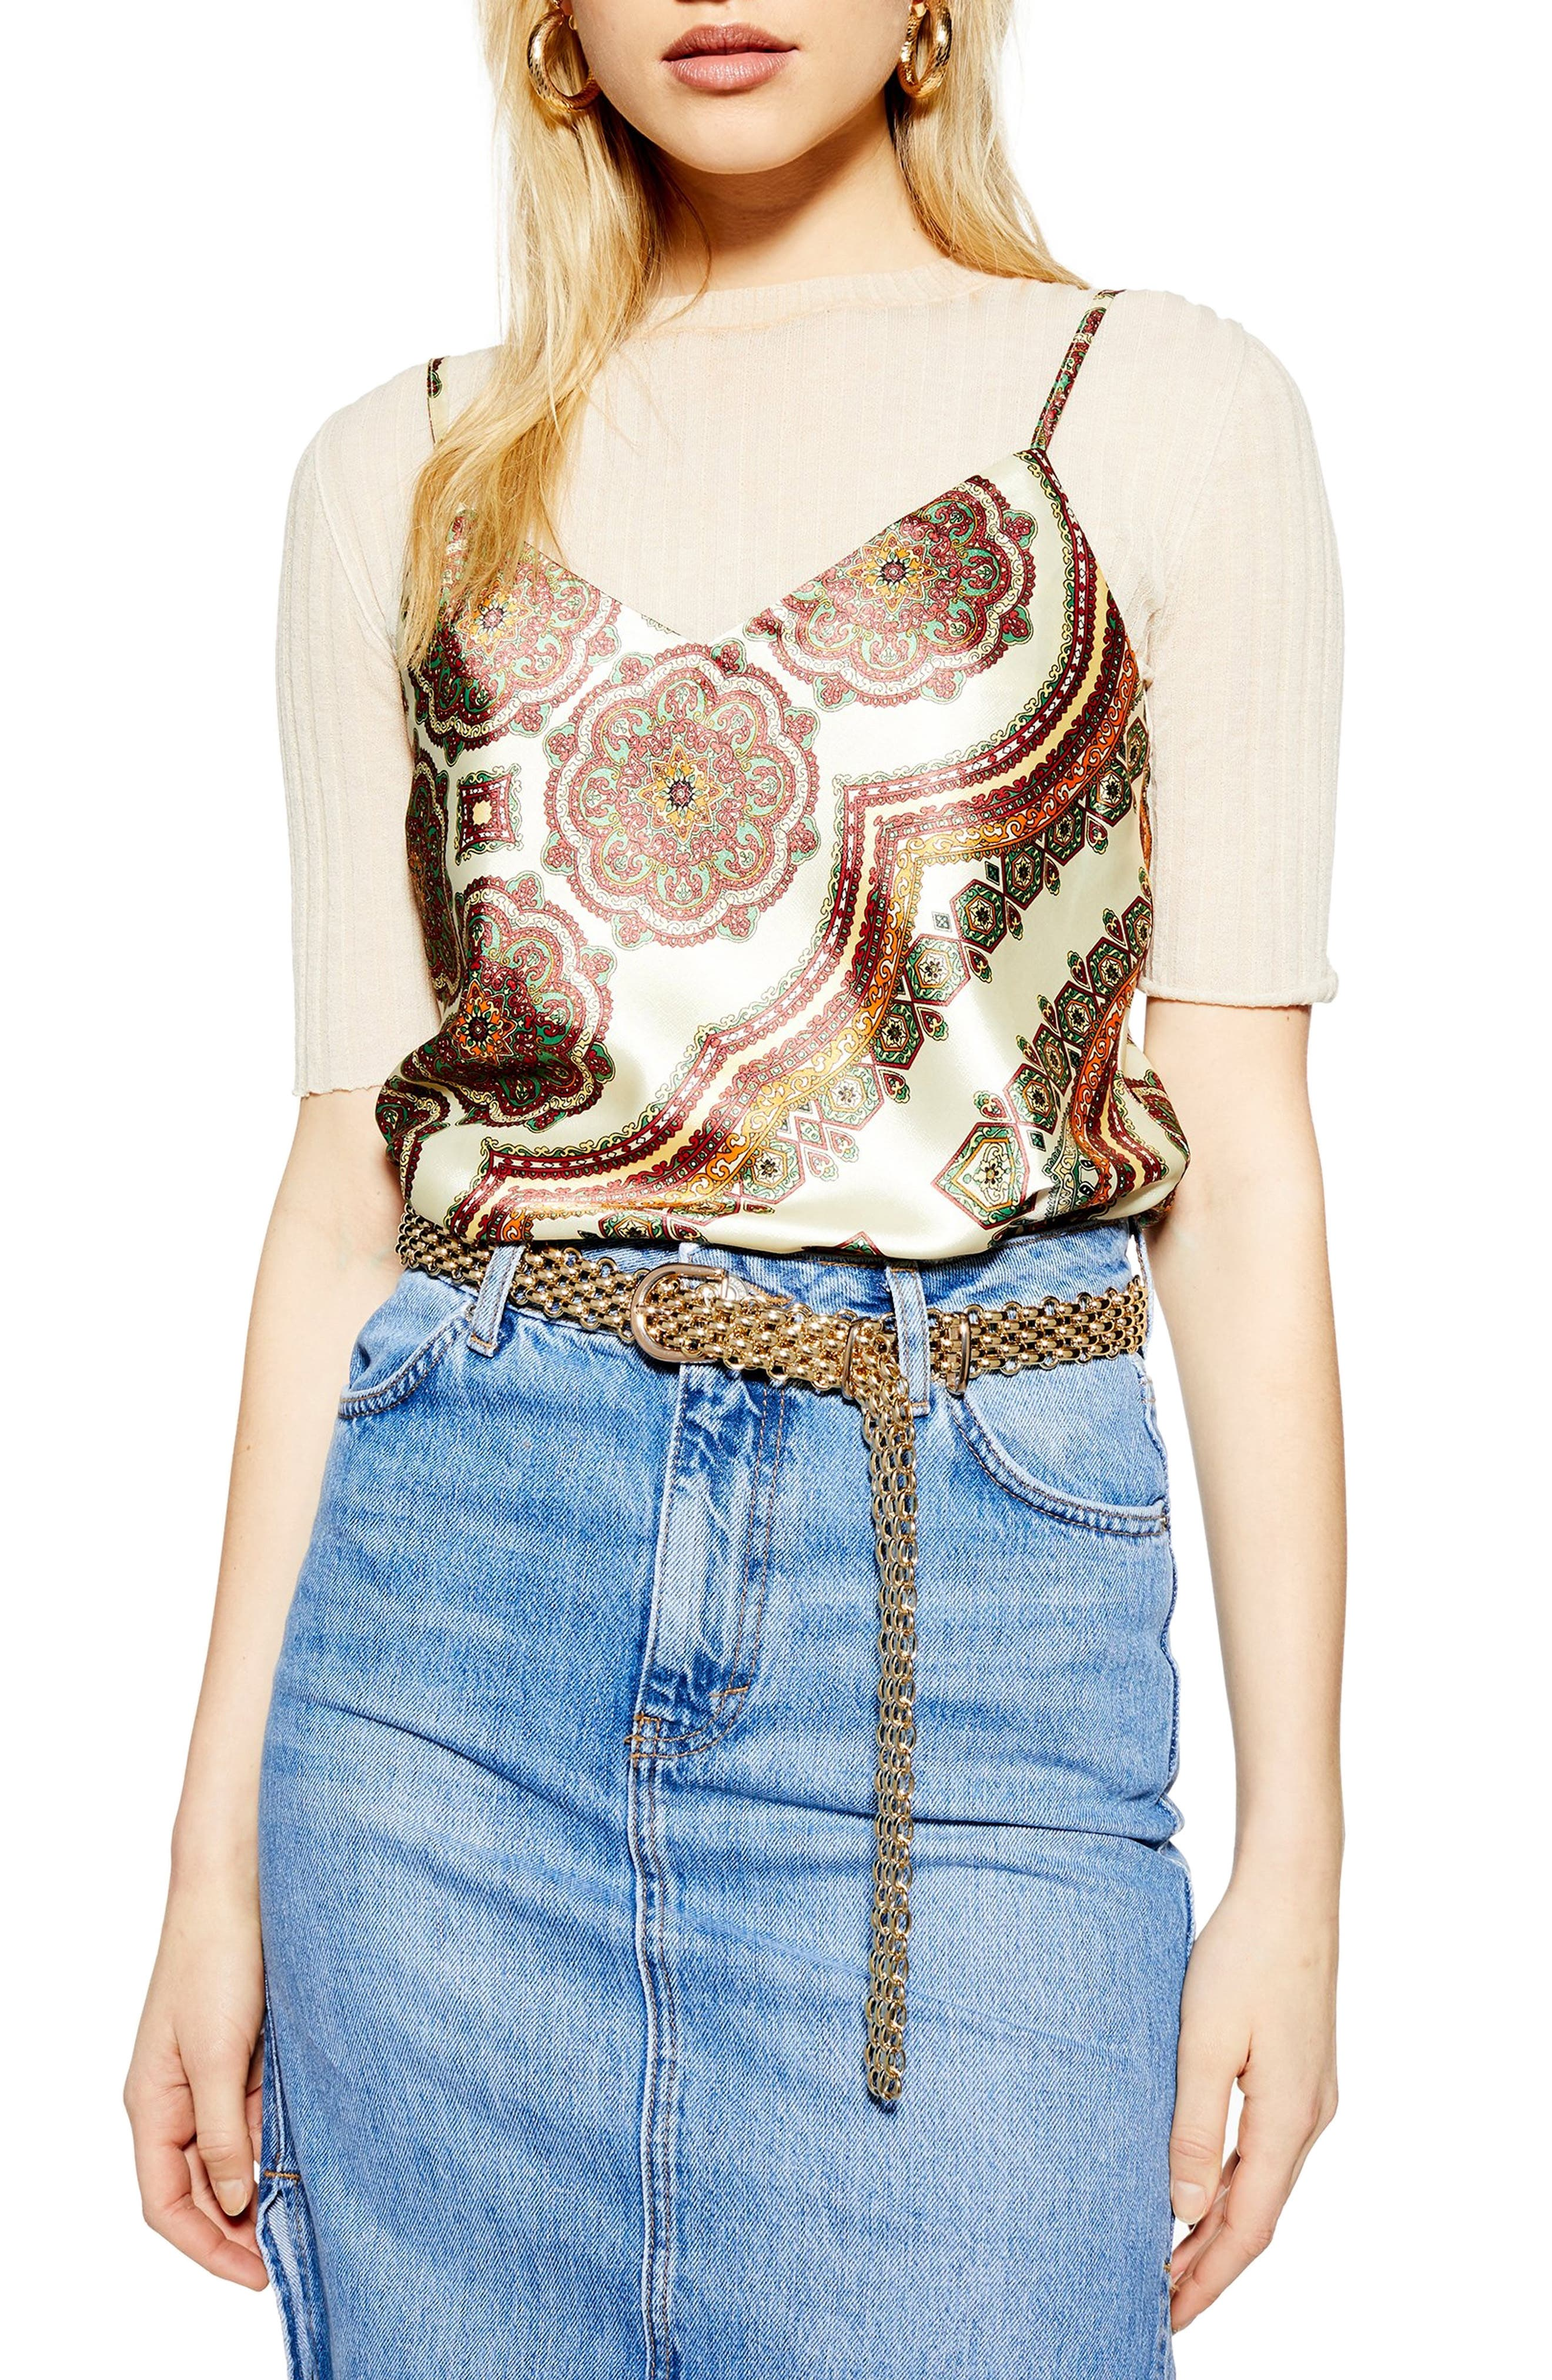 Topshop Paisley Print Camisole, US (fits like 14) - Brown